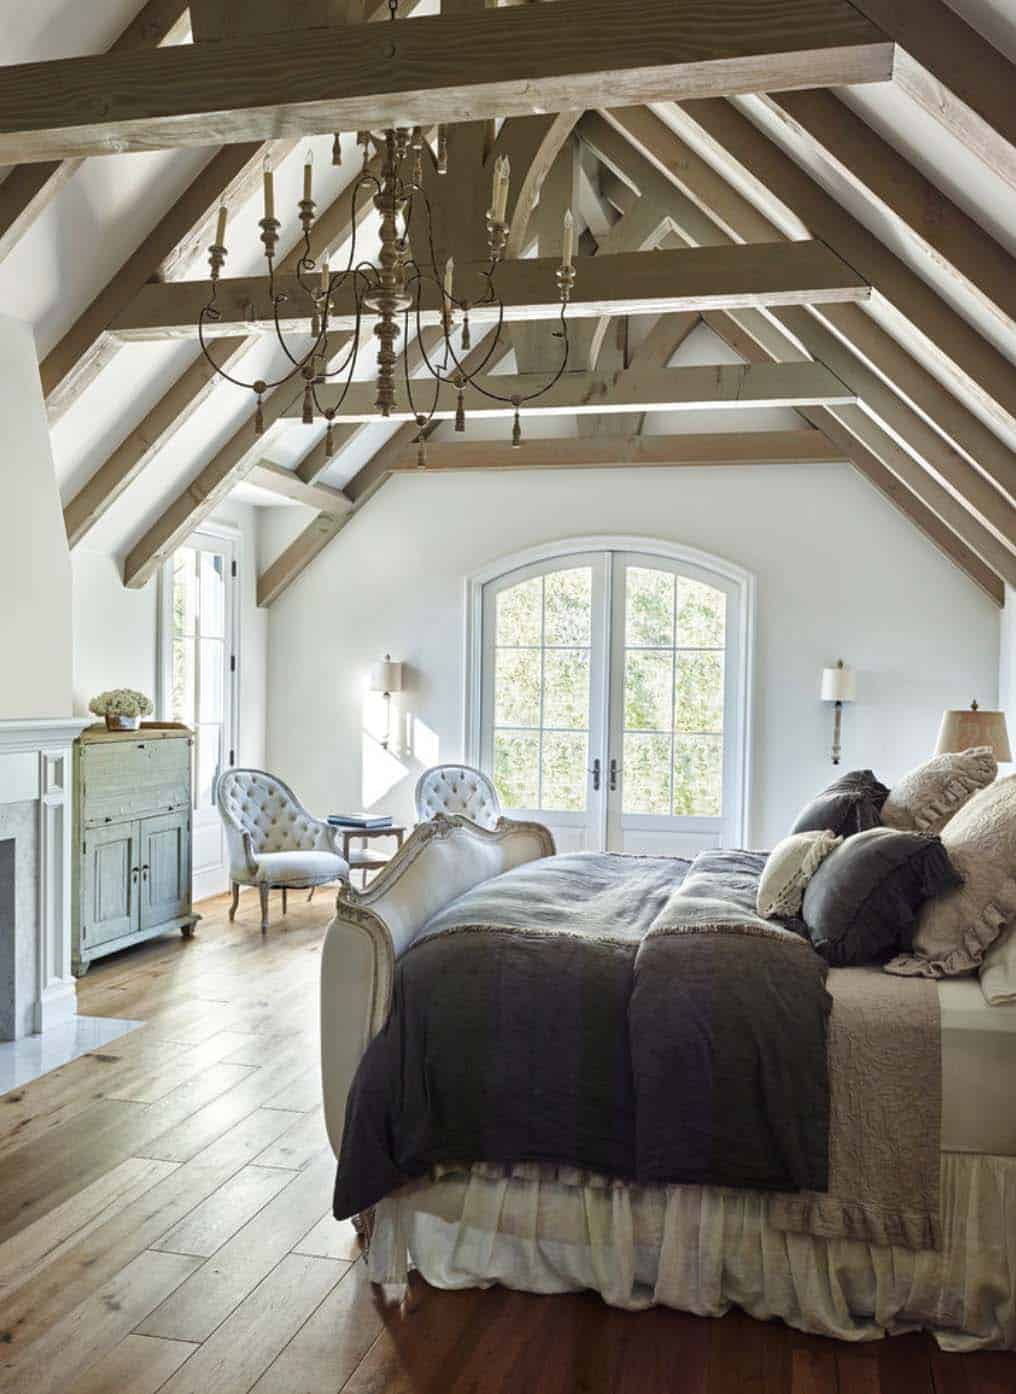 33 stunning master bedroom retreats with vaulted ceilings for Master bedroom ceiling designs